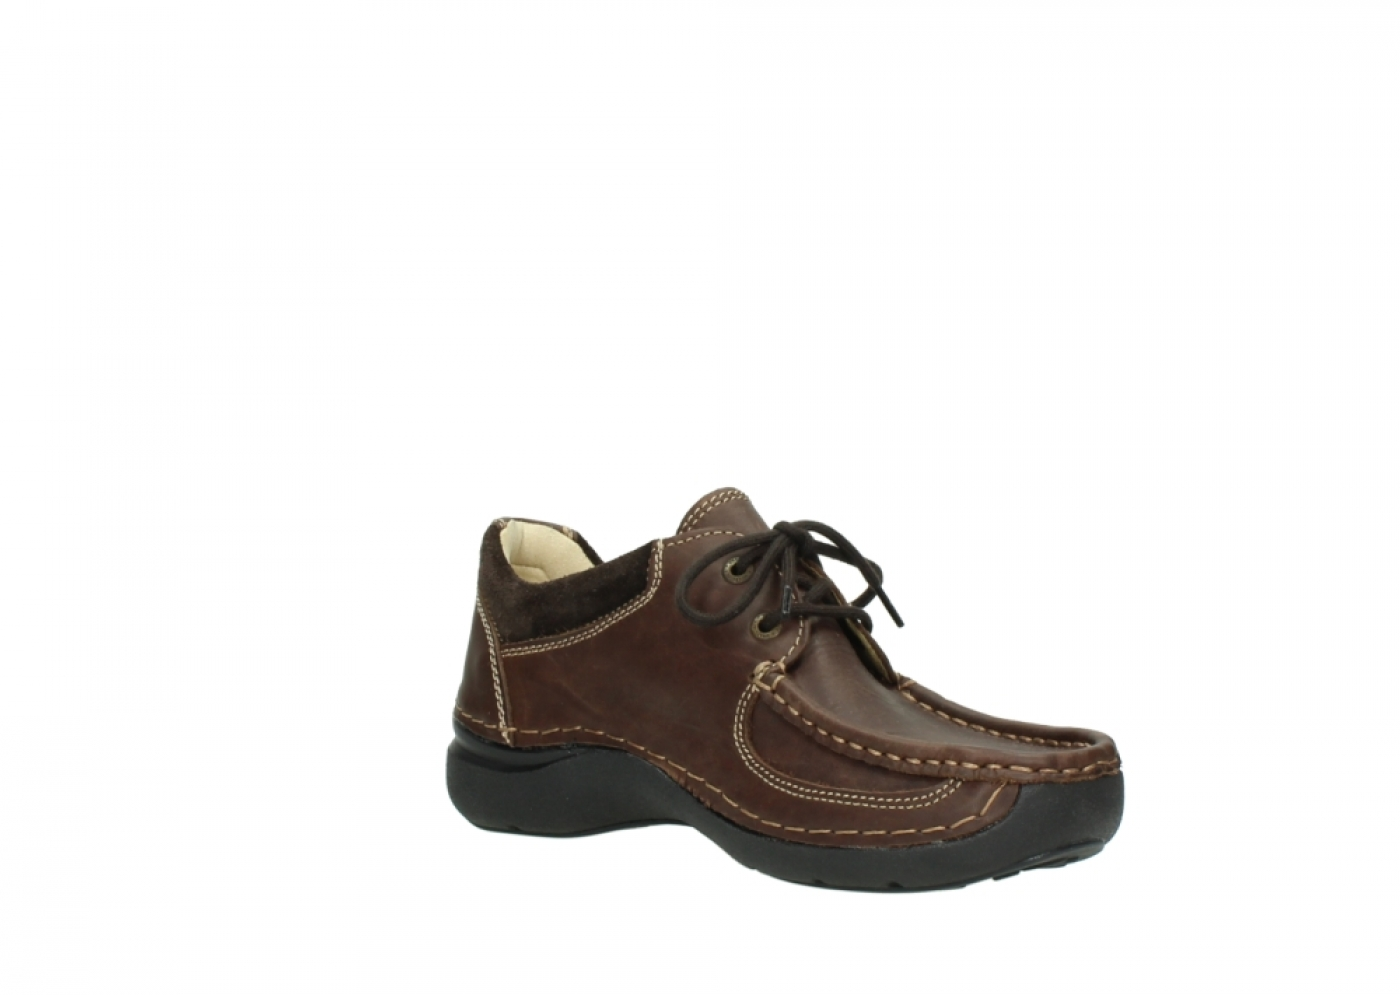 wolky shoes 07213 rolling shoe brown leather order now